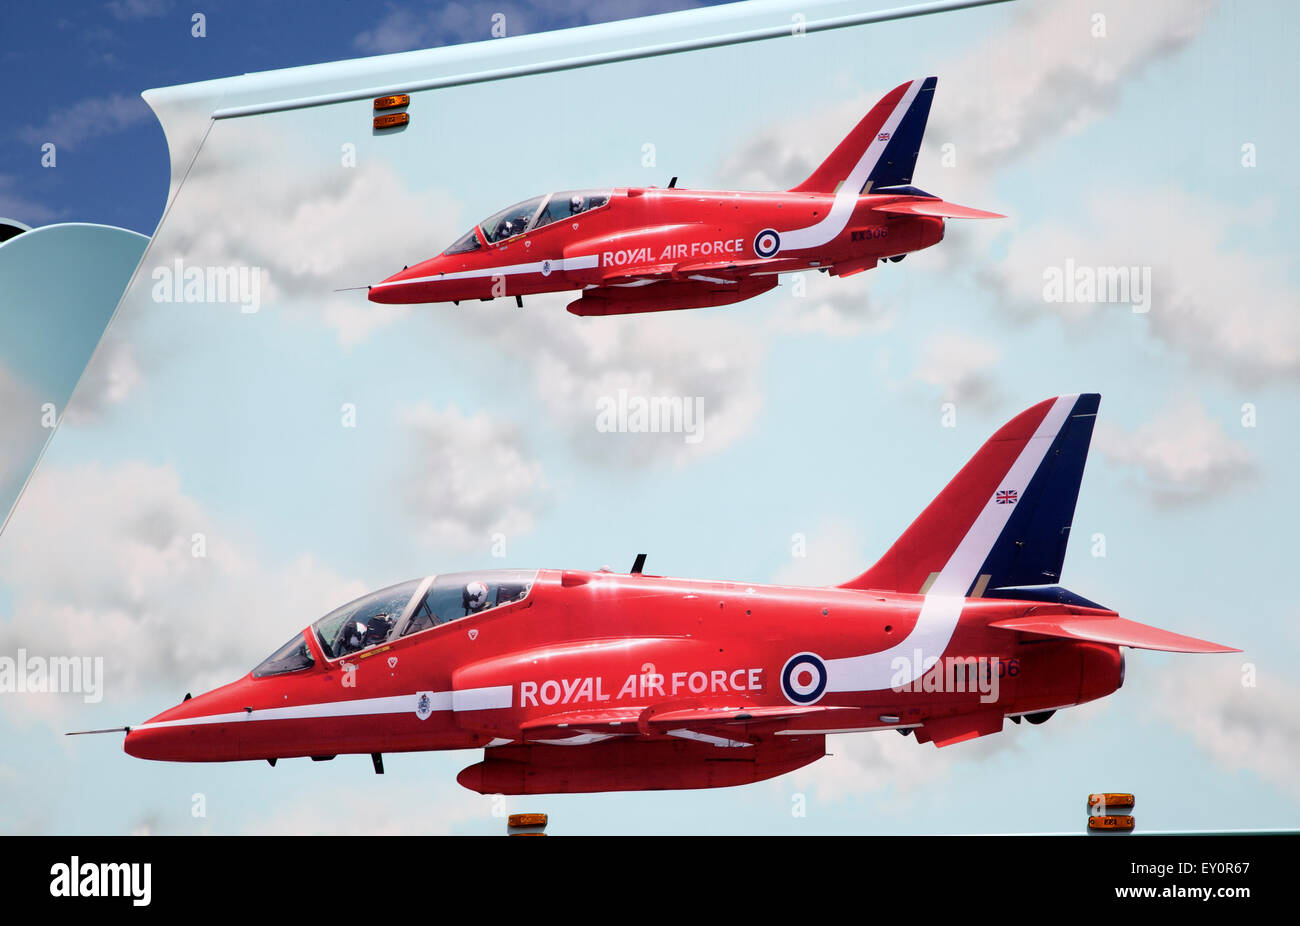 Royal Air Force red arrows display team vehicle at air show, Swansea, West Glamorgan, South Wales, UK Stock Photo